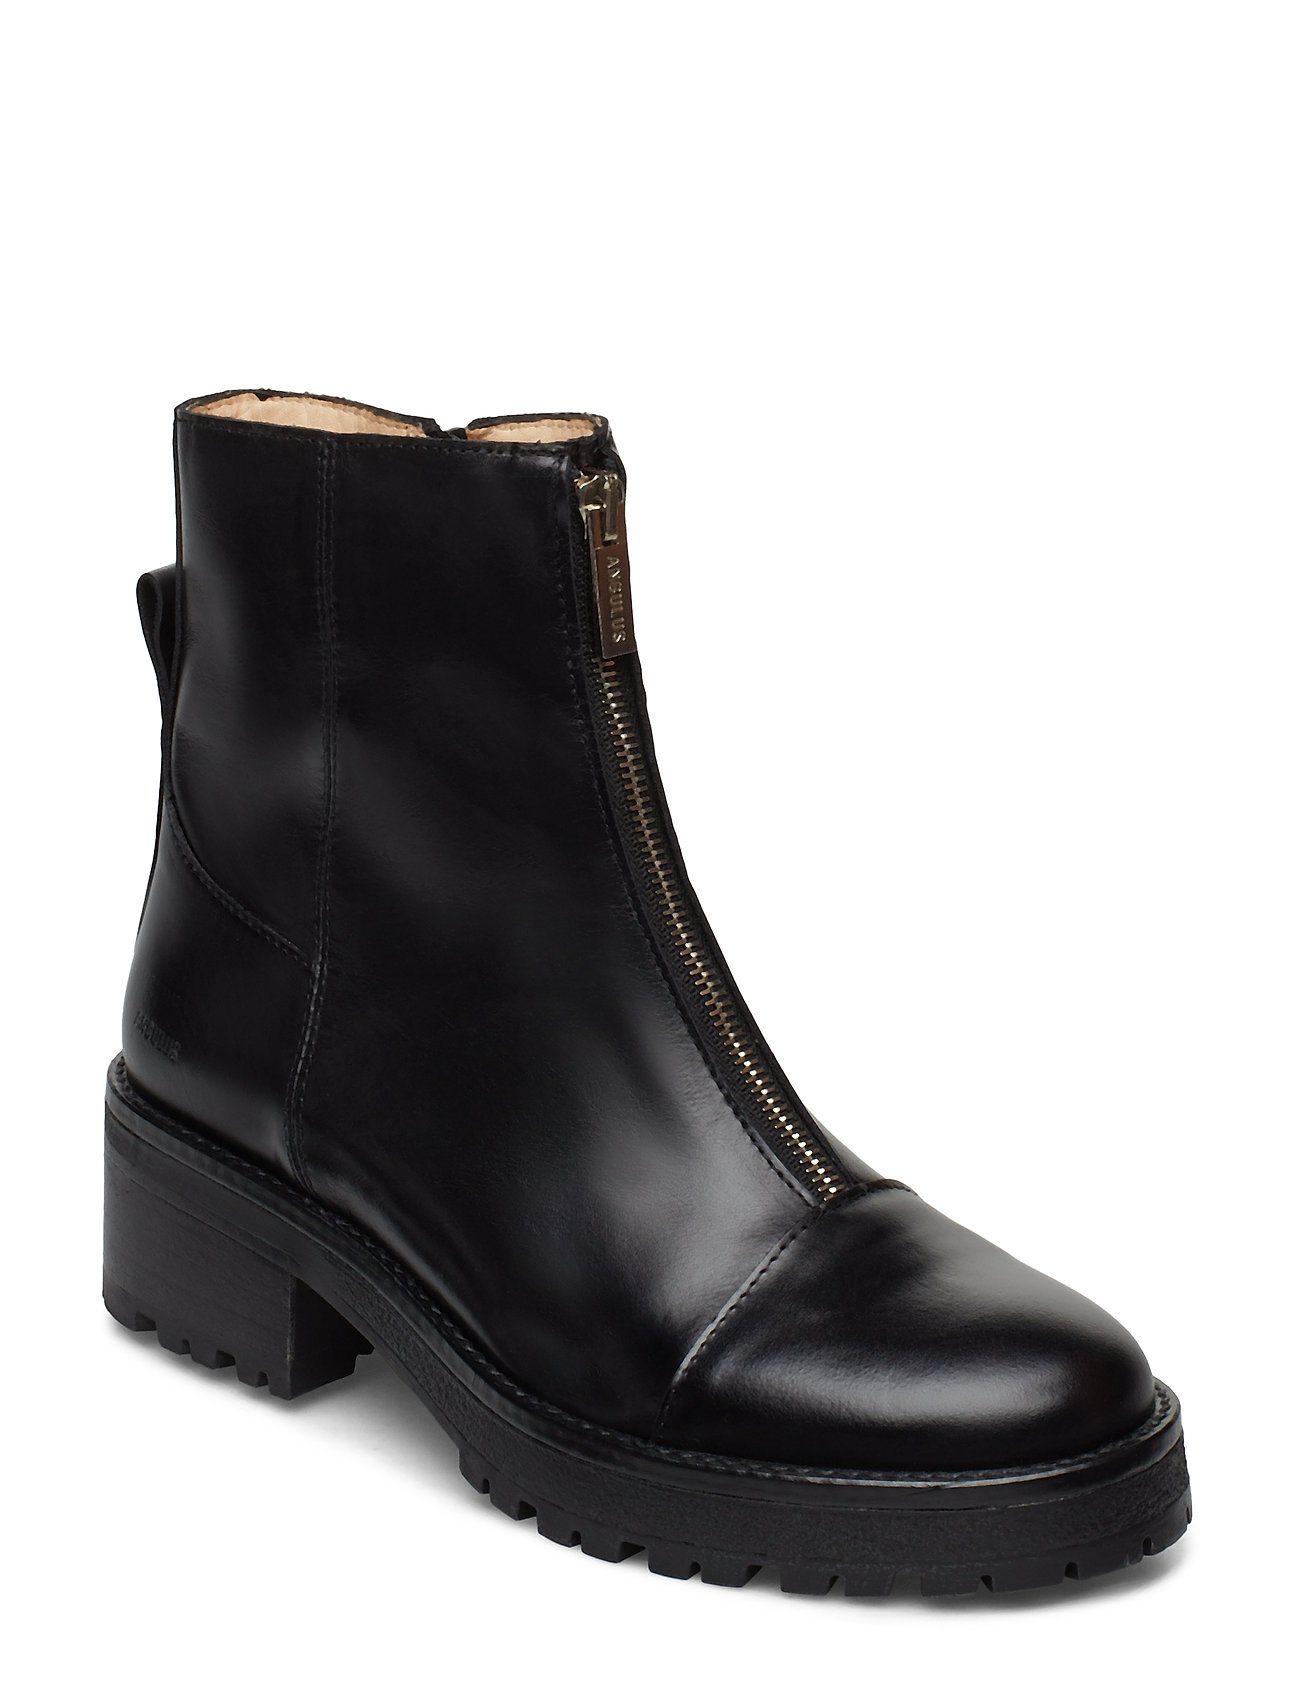 Image of Booties - Flat - With Zipper Shoes Boots Ankle Boots Ankle Boots Flat Heel Sort ANGULUS (3215337517)